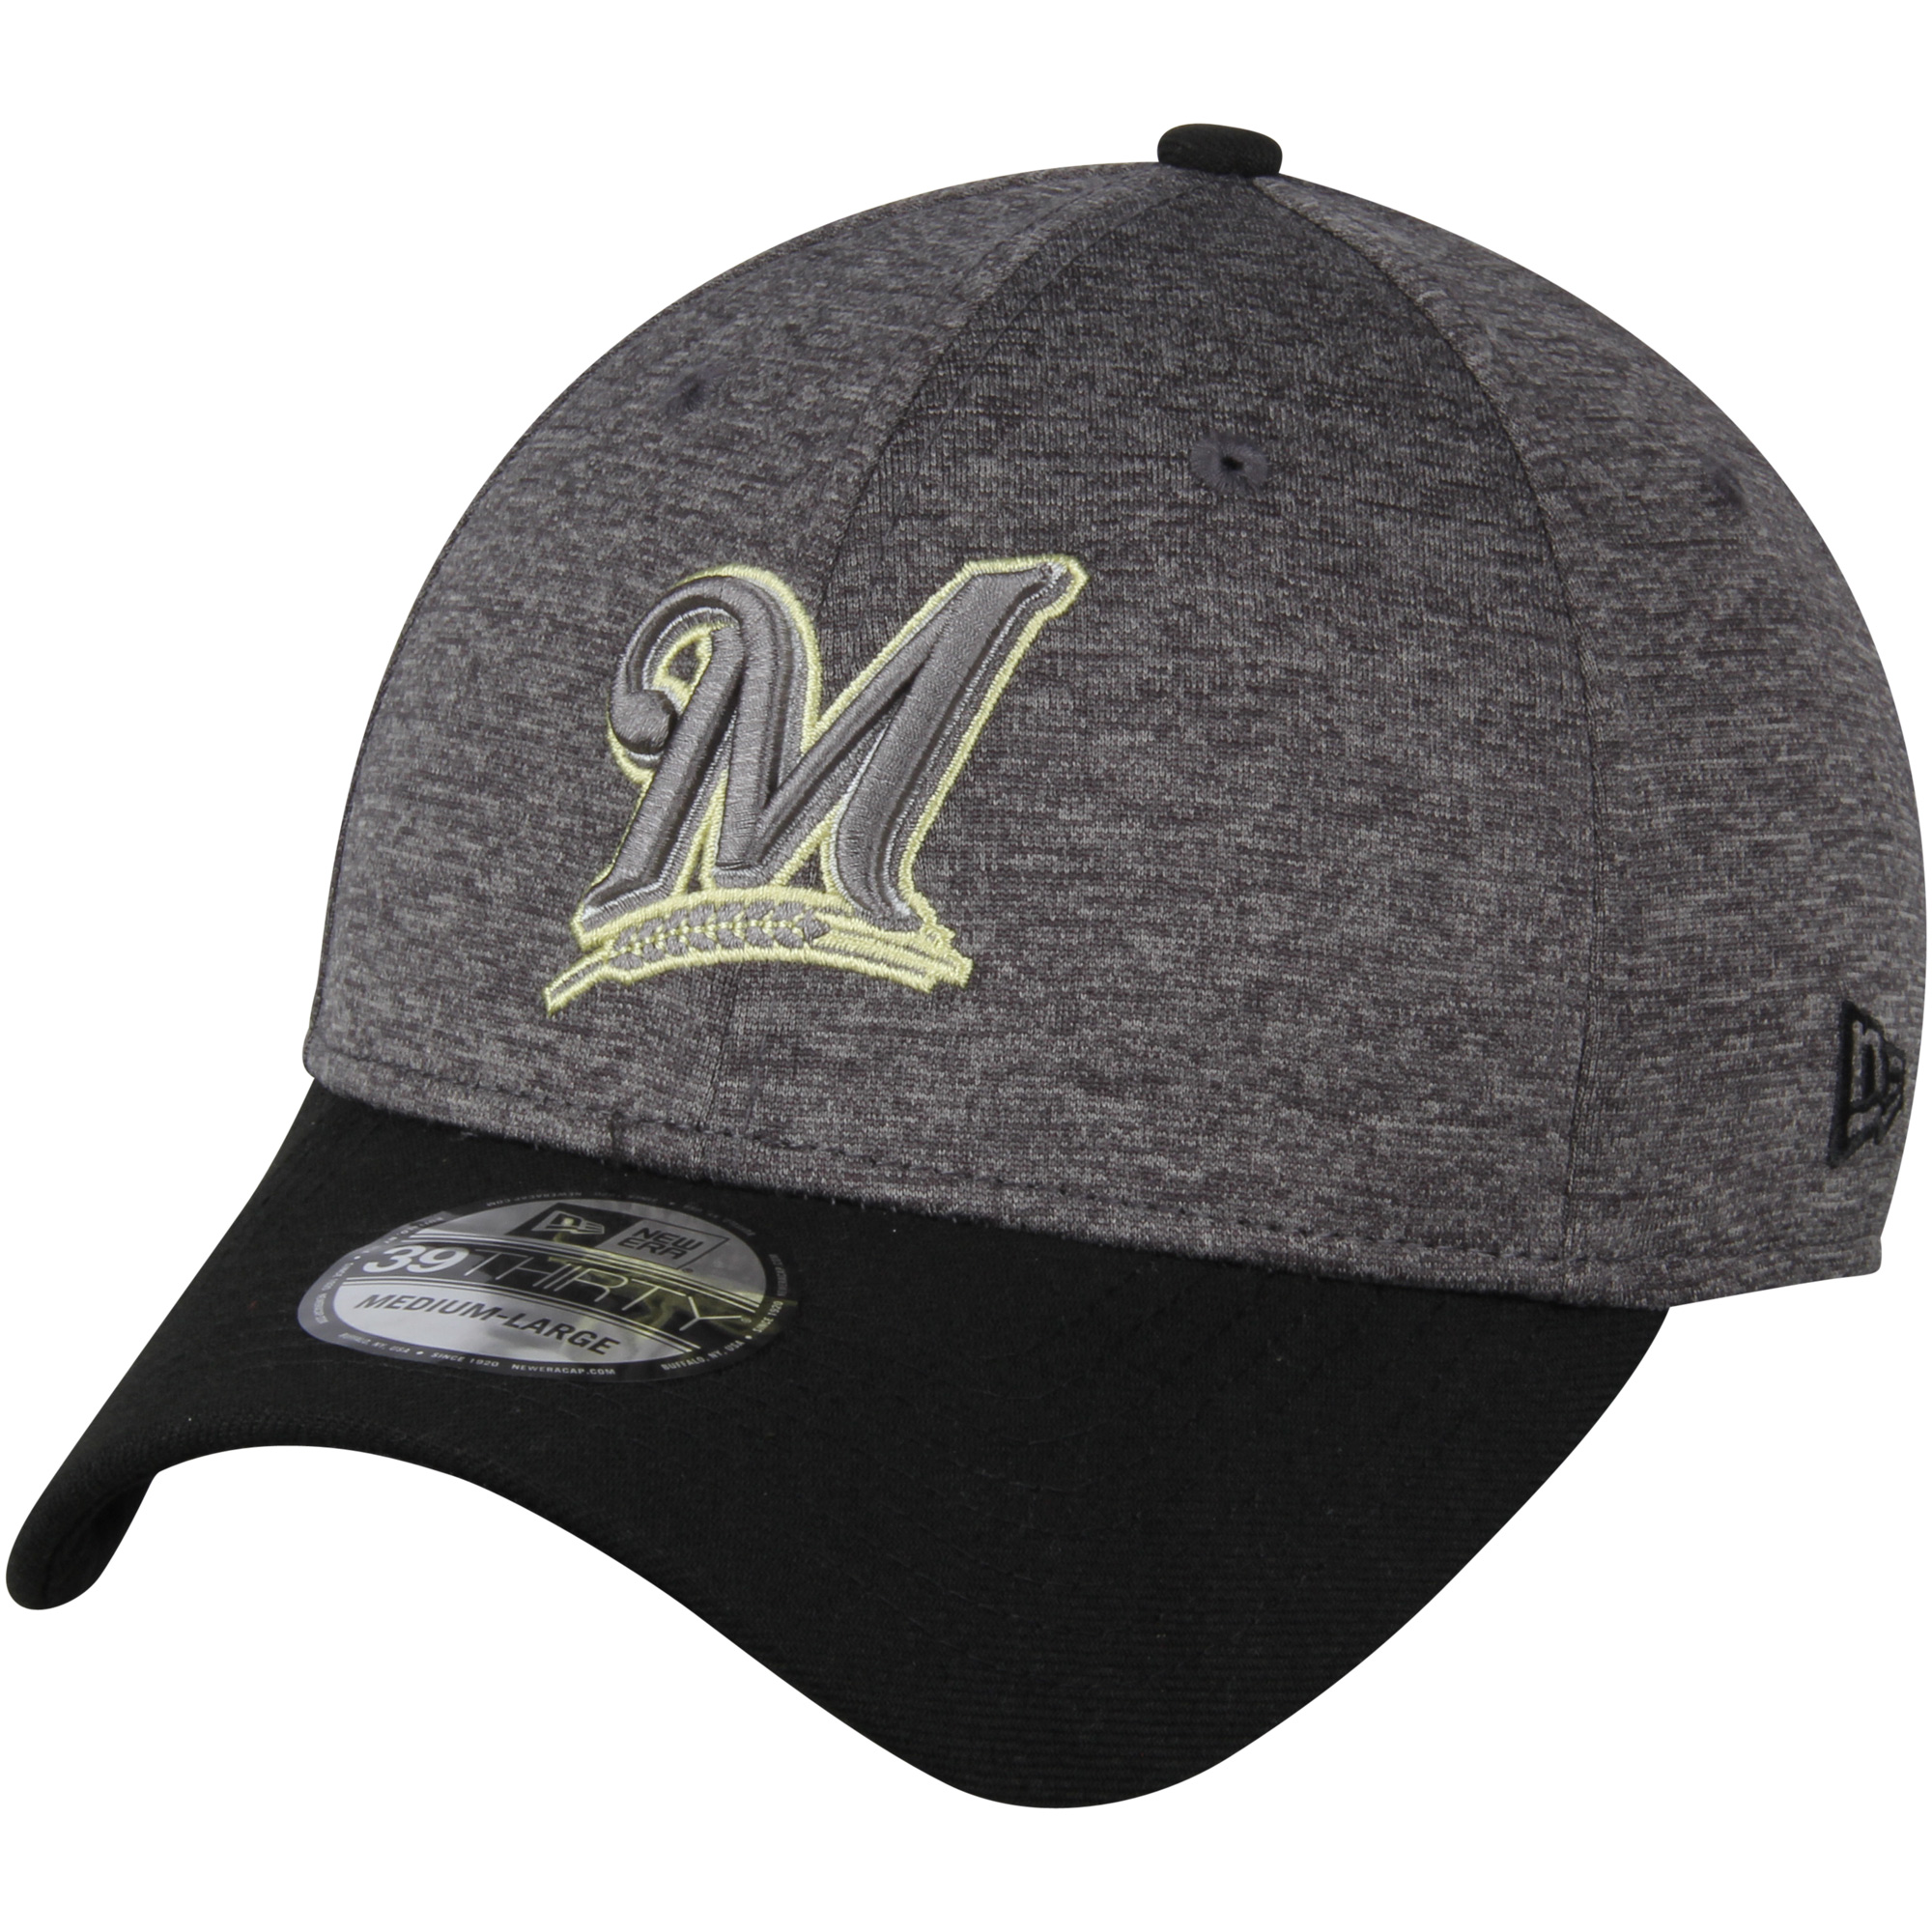 Milwaukee Brewers New Era 39THIRTY Shadow Tech Color Pop Flex Hat - Heathered Gray/Black